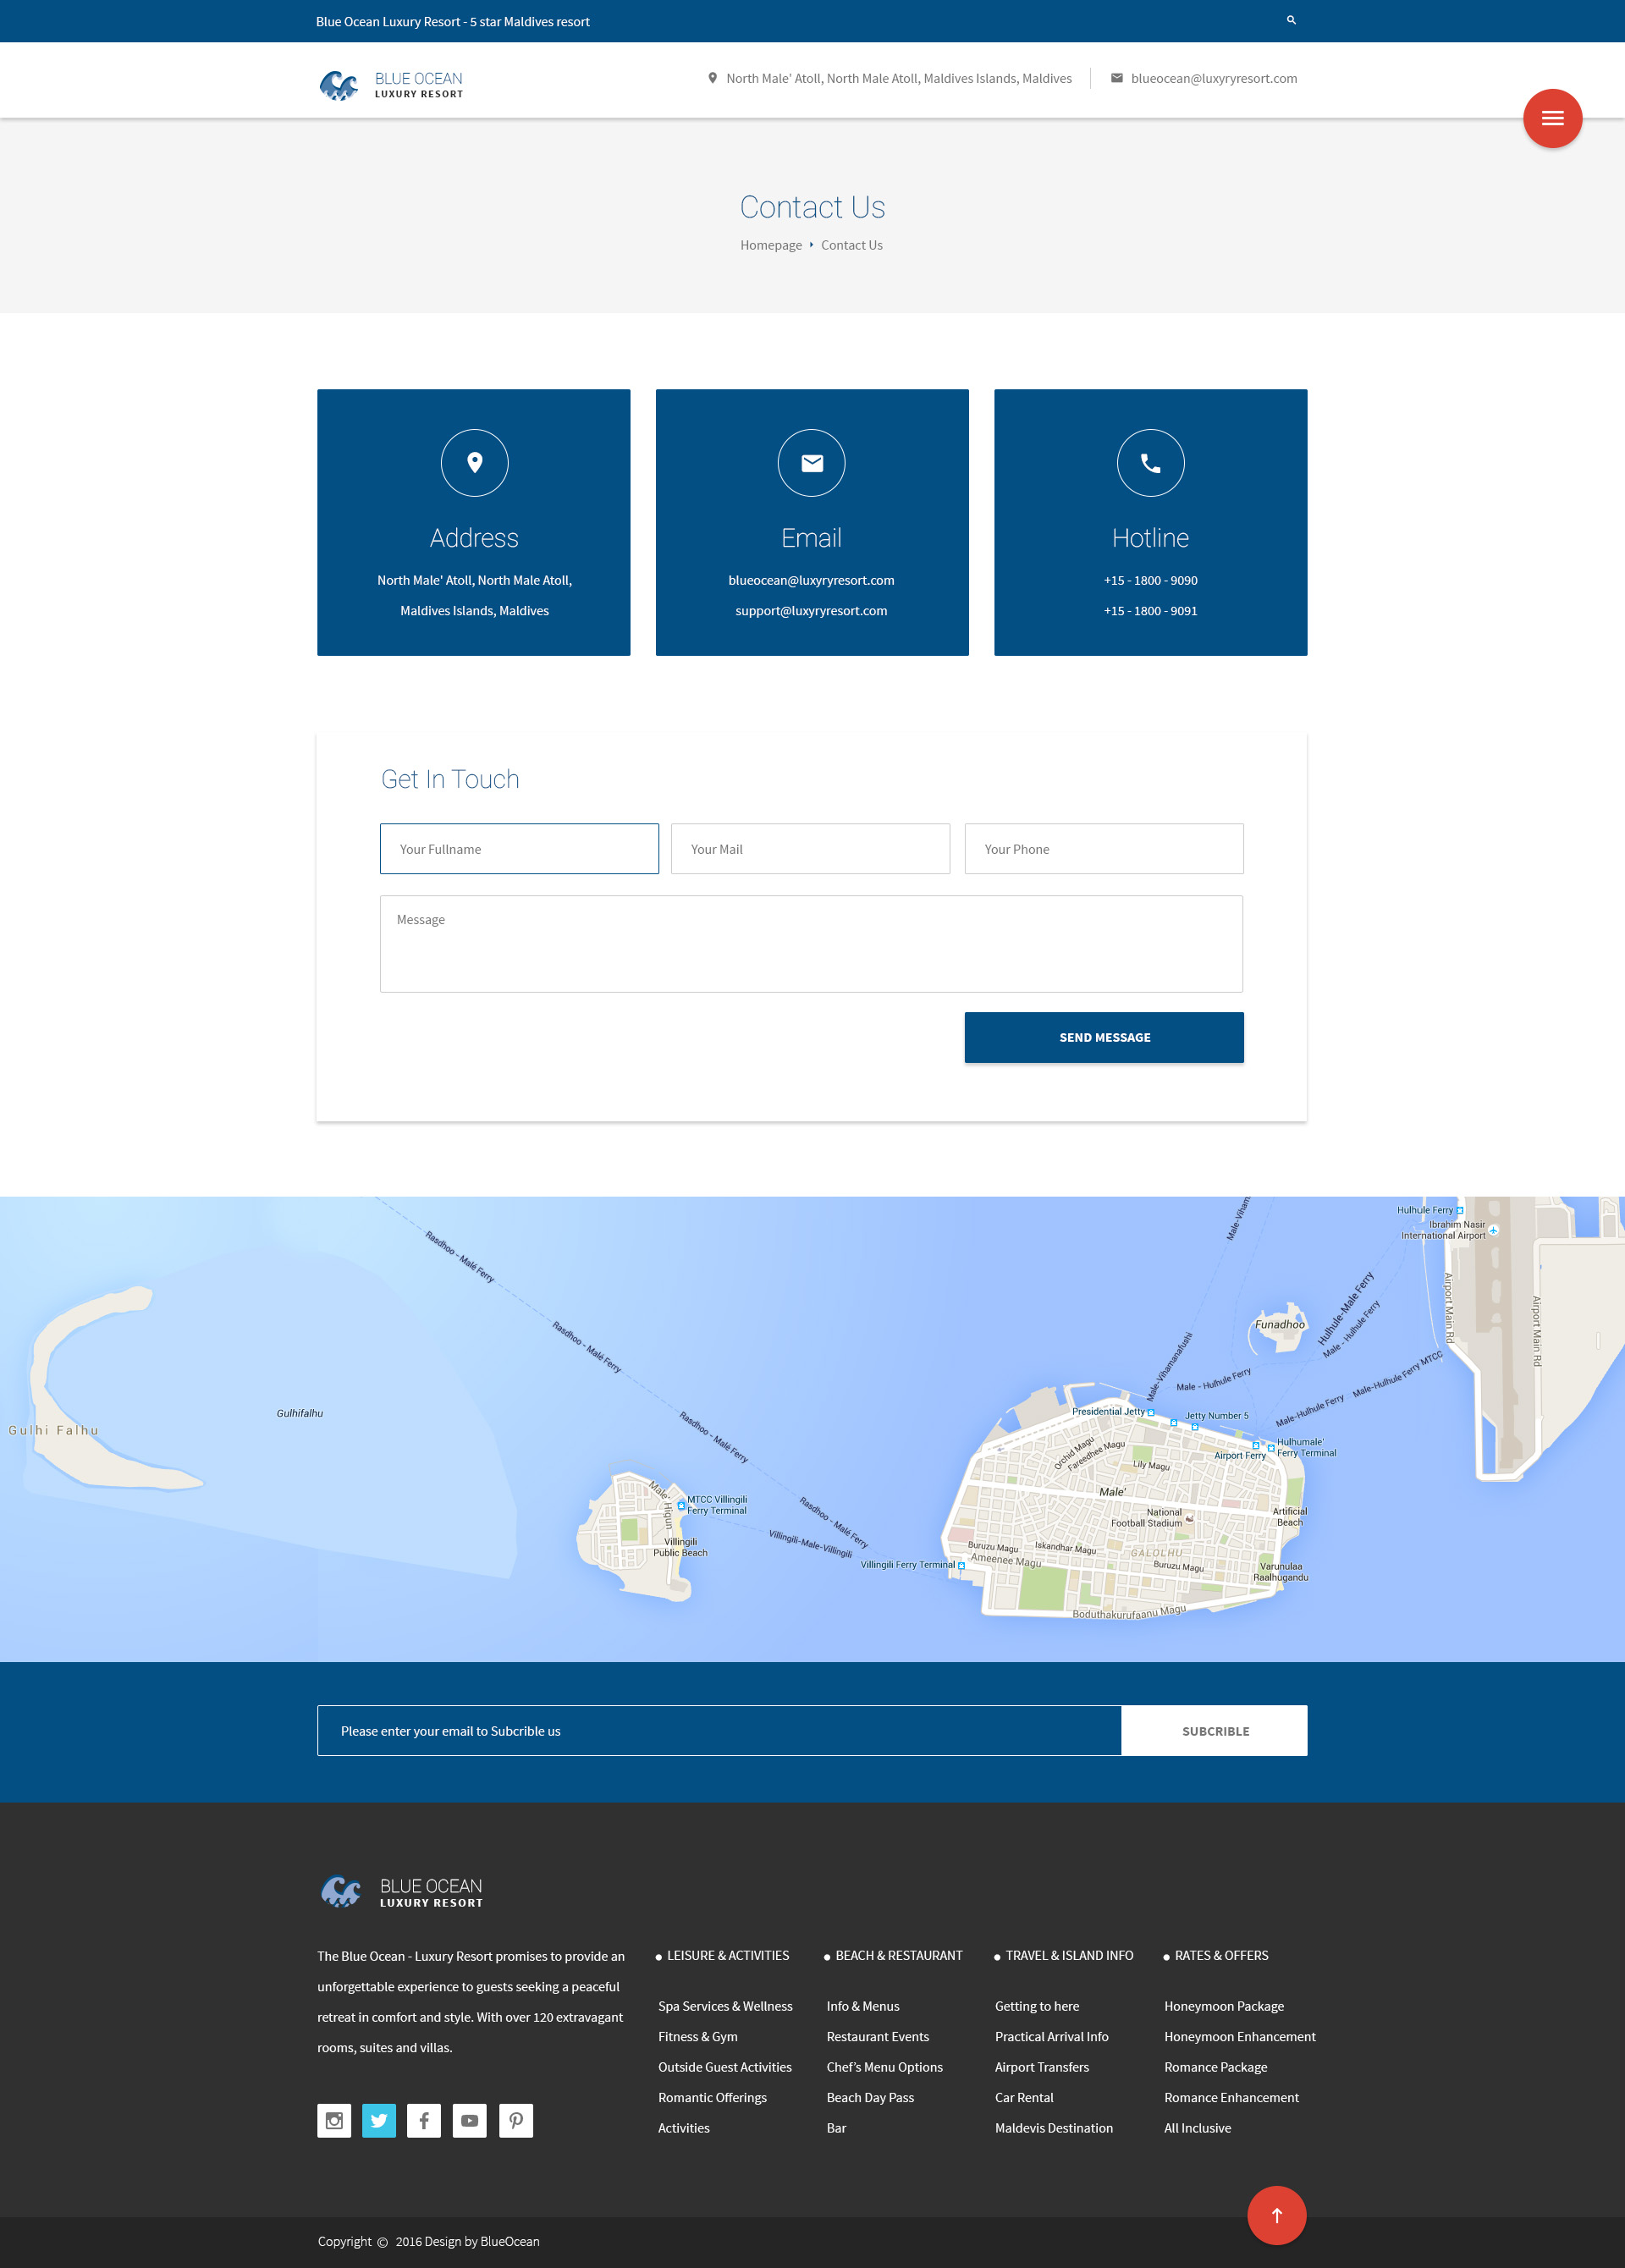 Blue Ocean Resort Hotel Psd Template